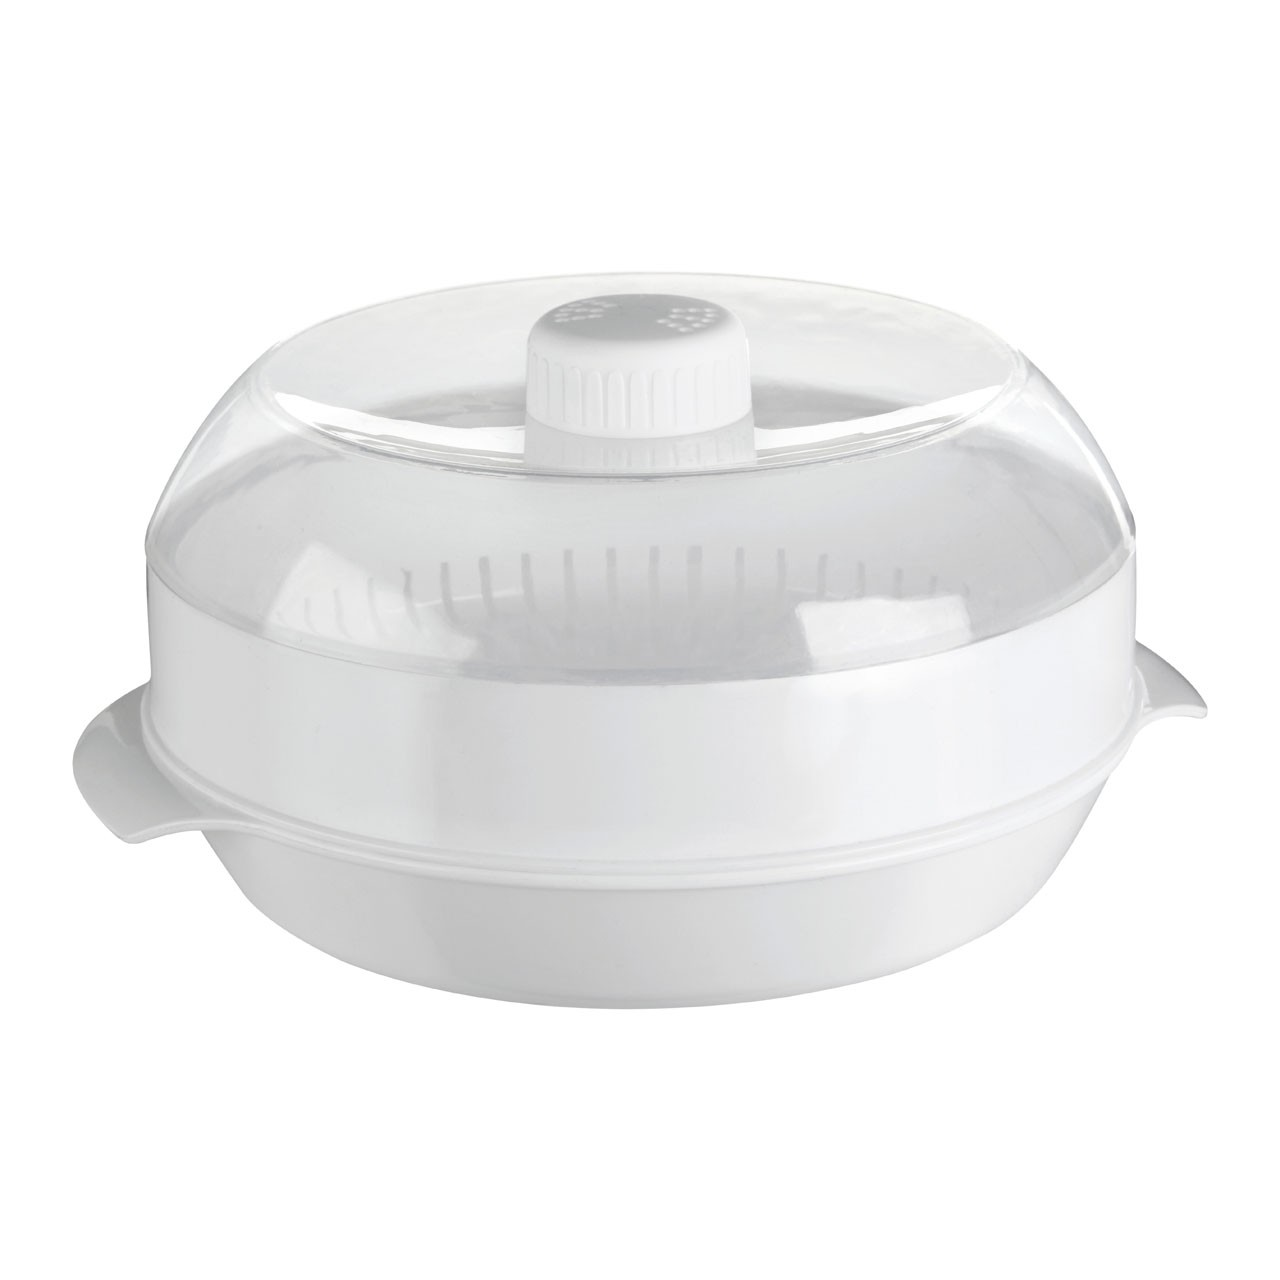 Microwave Steamer White With Clear PP - Polypropylene